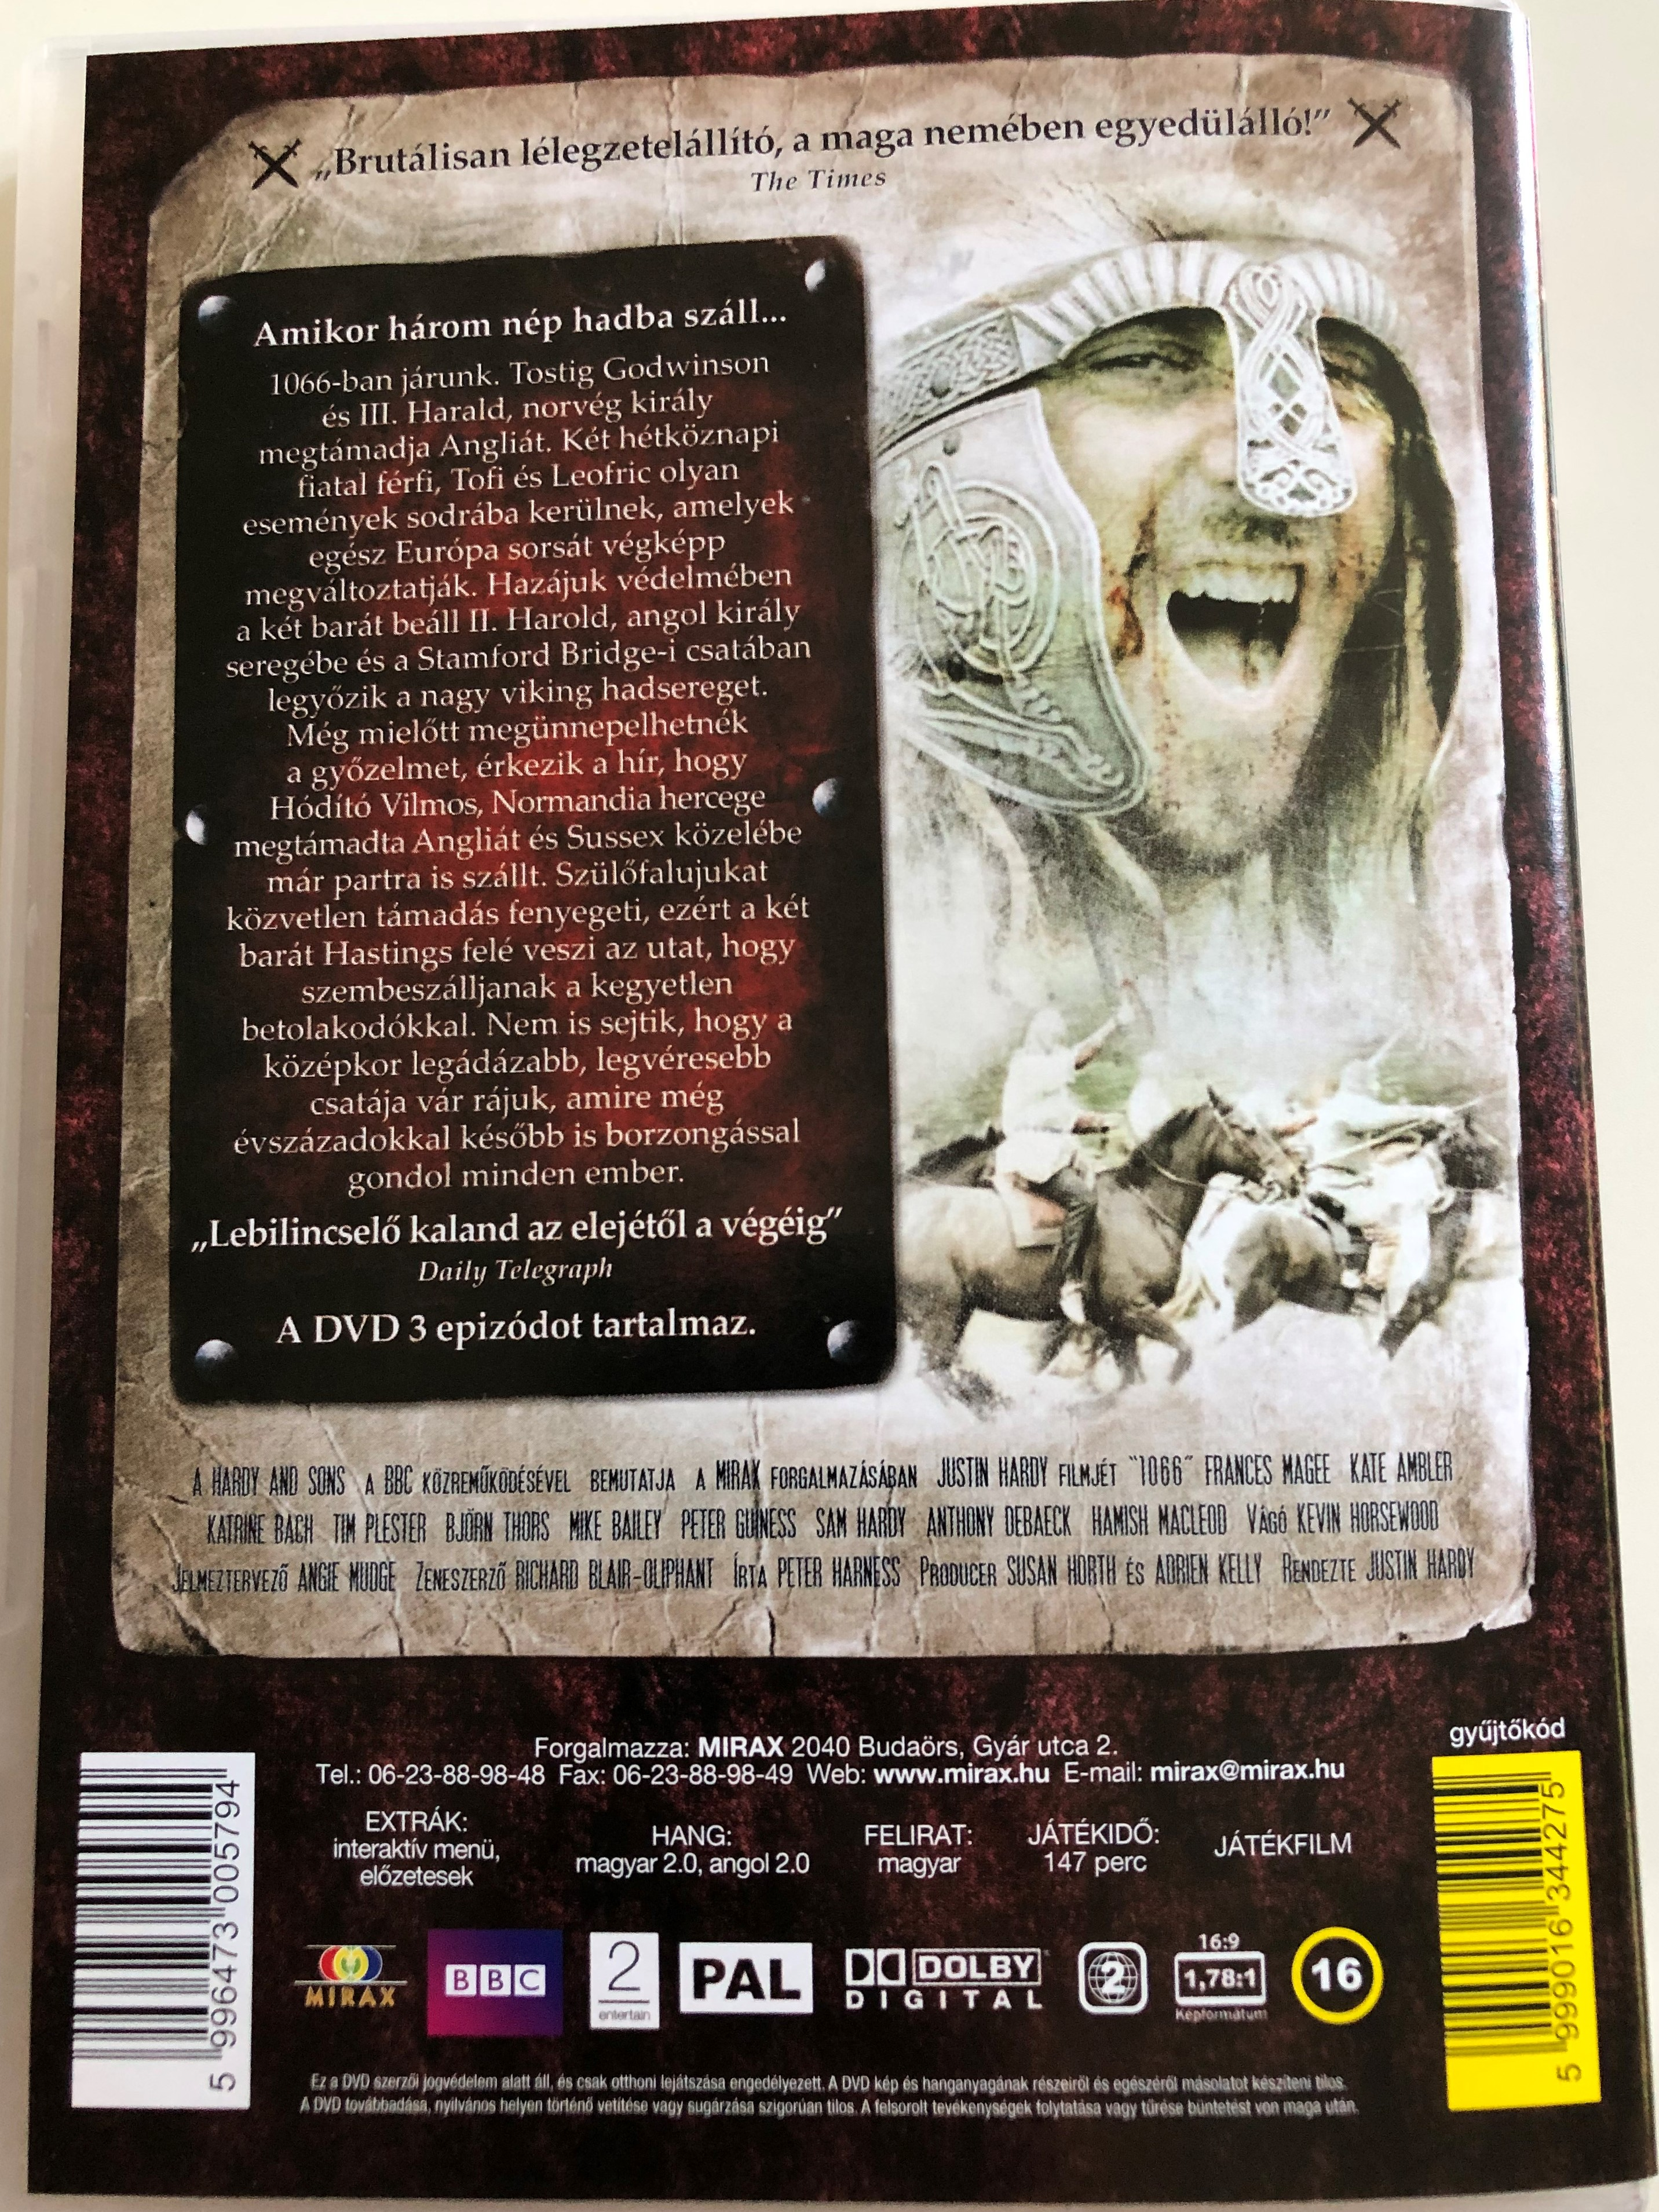 106-the-battle-for-middle-earth-dvd-2009-1066-kir-lyok-h-bor-ja-bbc-3-episodes-on-disc-directed-by-justin-hardy-starring-ian-holm-mike-bailey-francis-magee-tim-plester-s-ren-byder-kate-ambler-gemma-lawrence-2-.jpg